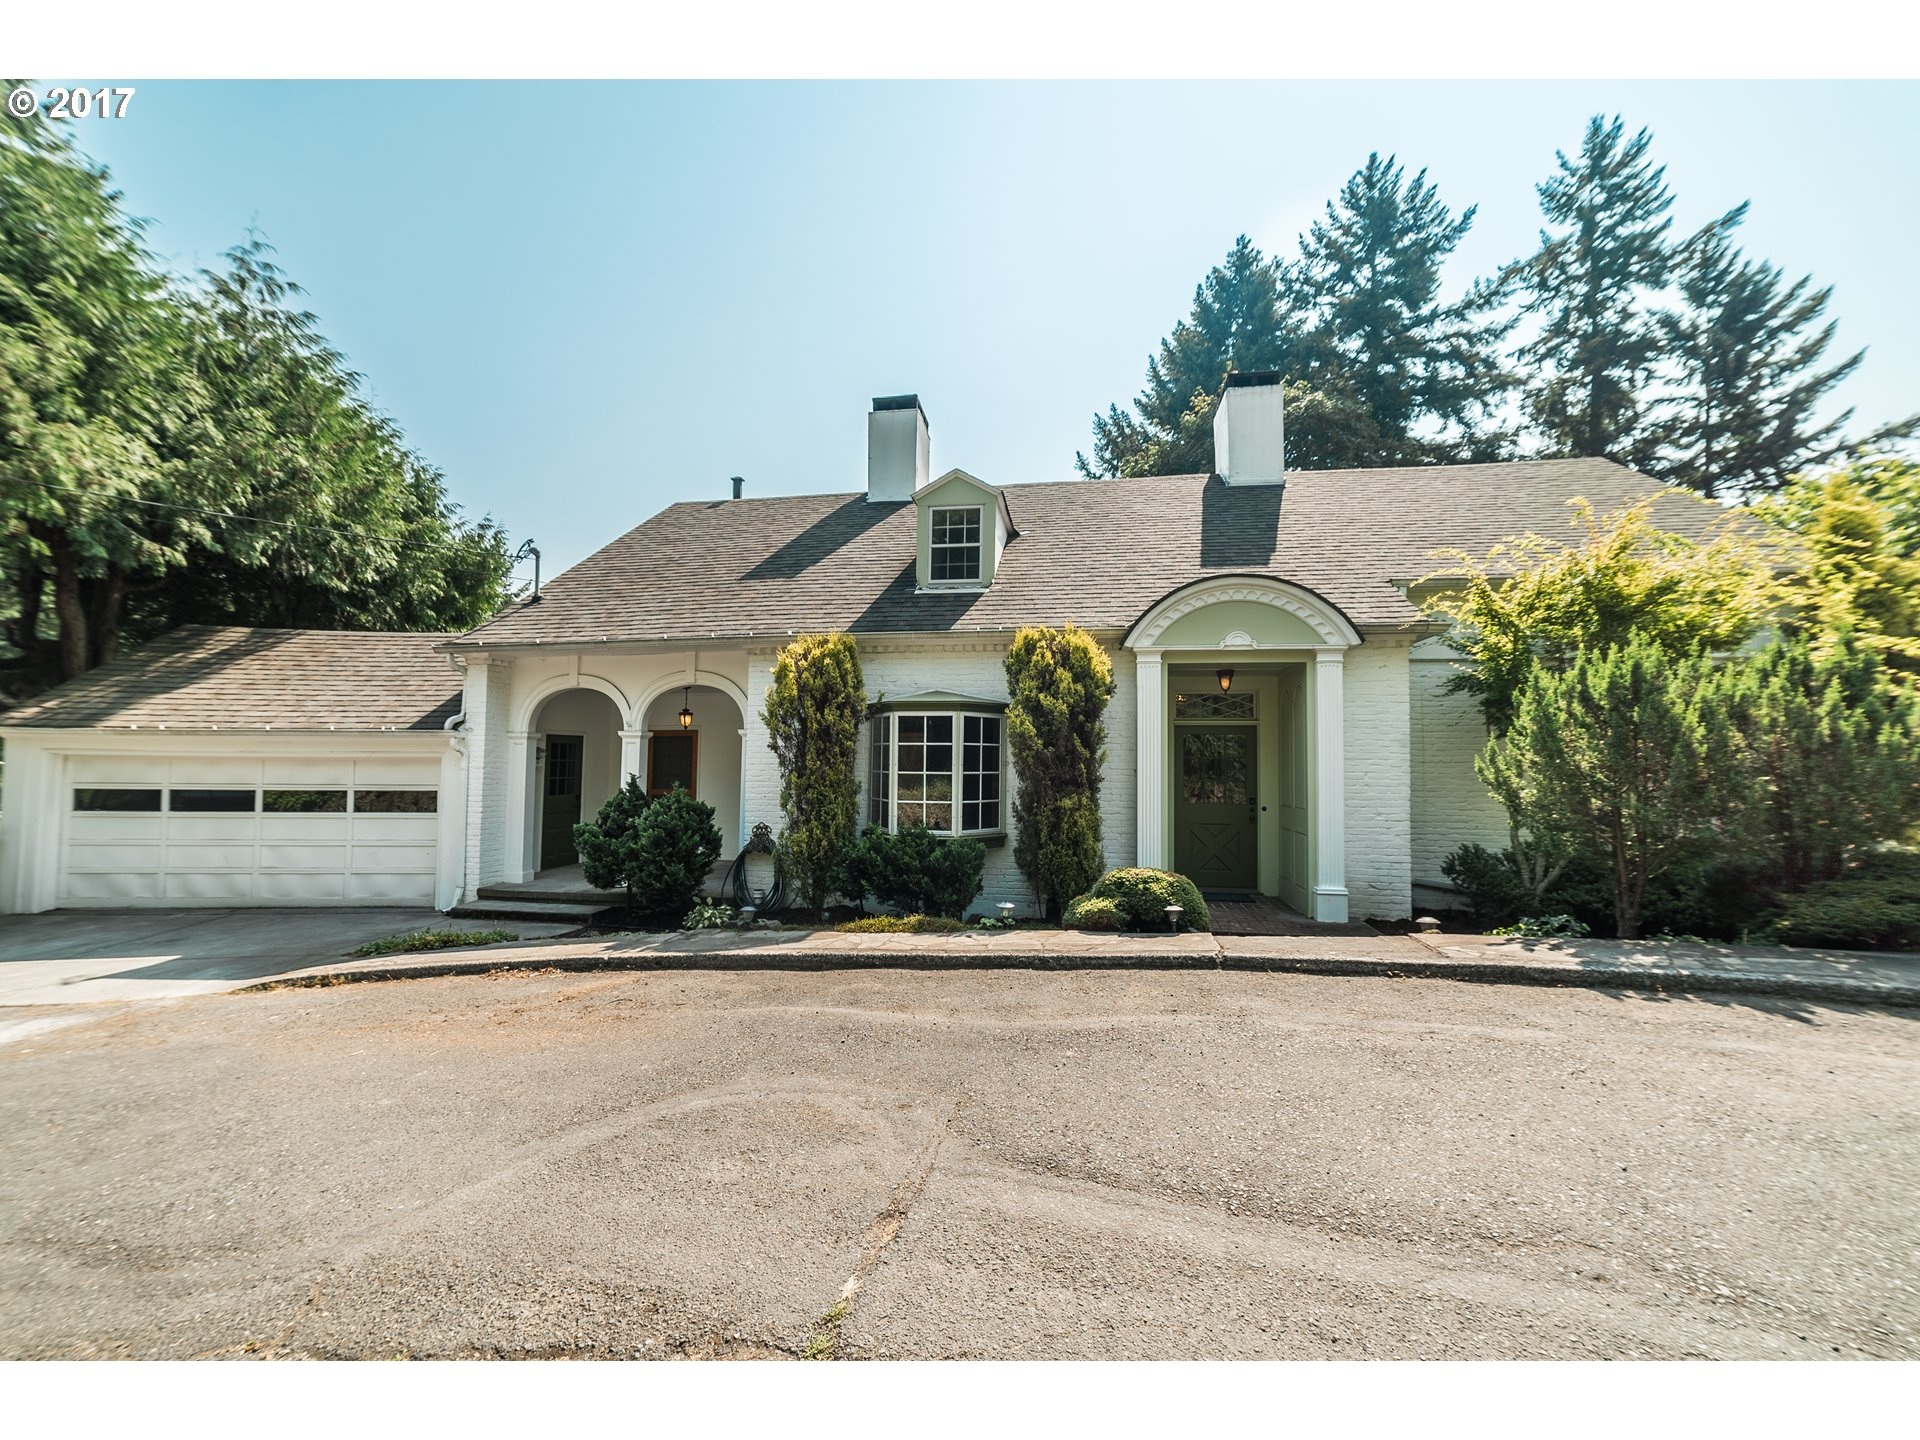 Photo for 1870 SW EDGEWOOD RD, Portland, OR 97201 (MLS # 17302961)